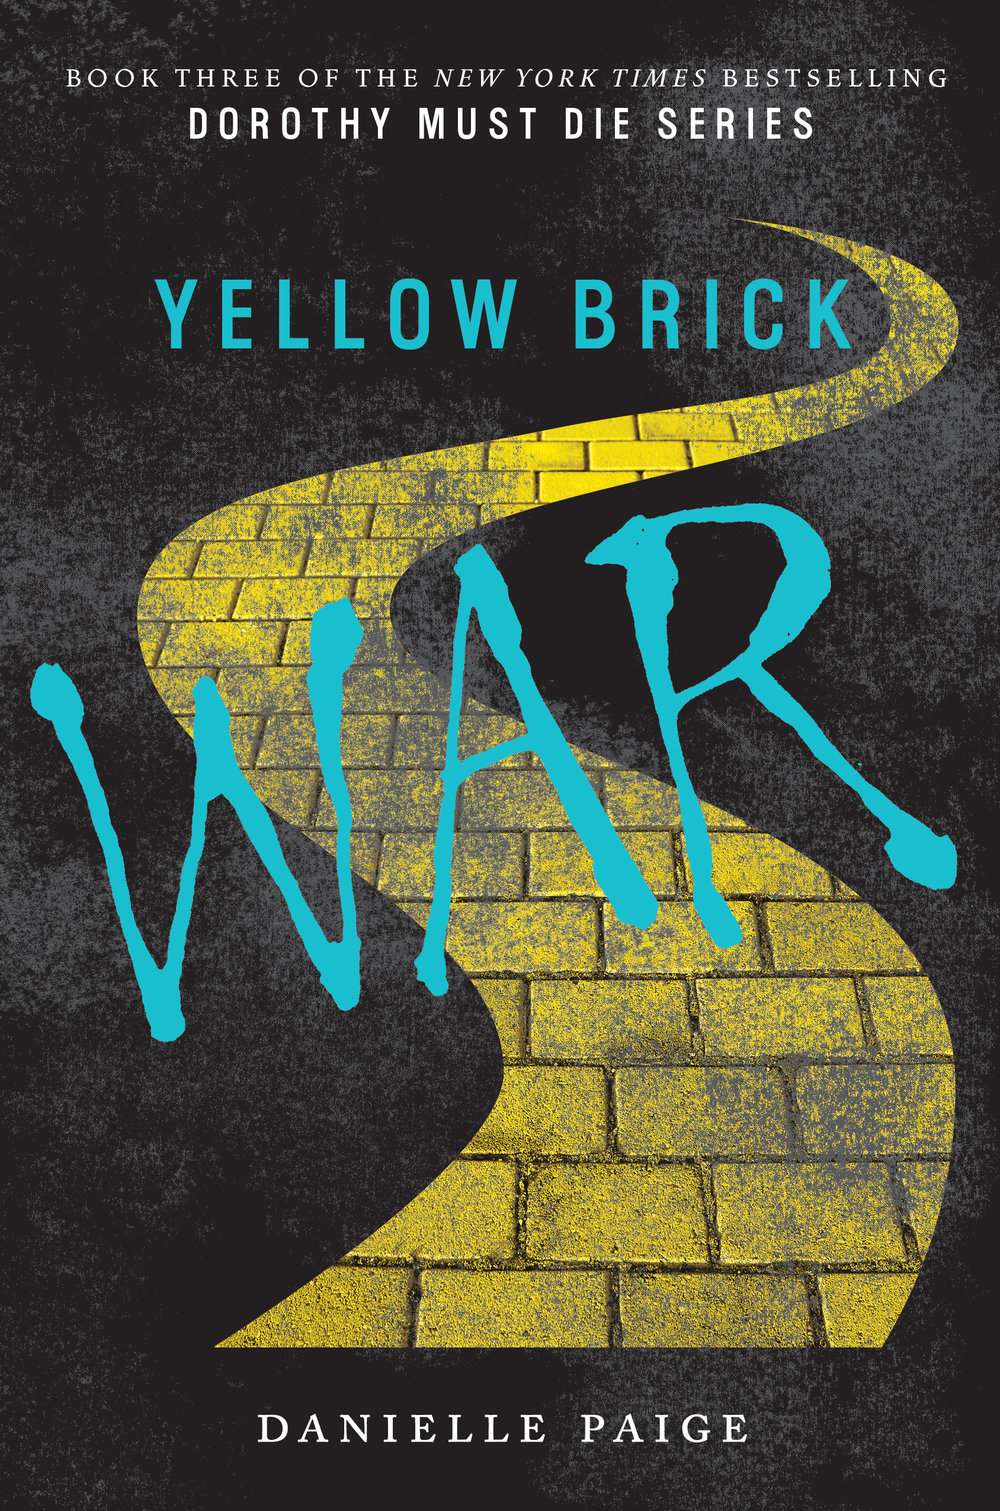 DMDHC3 Yellow Brick War10.jpg